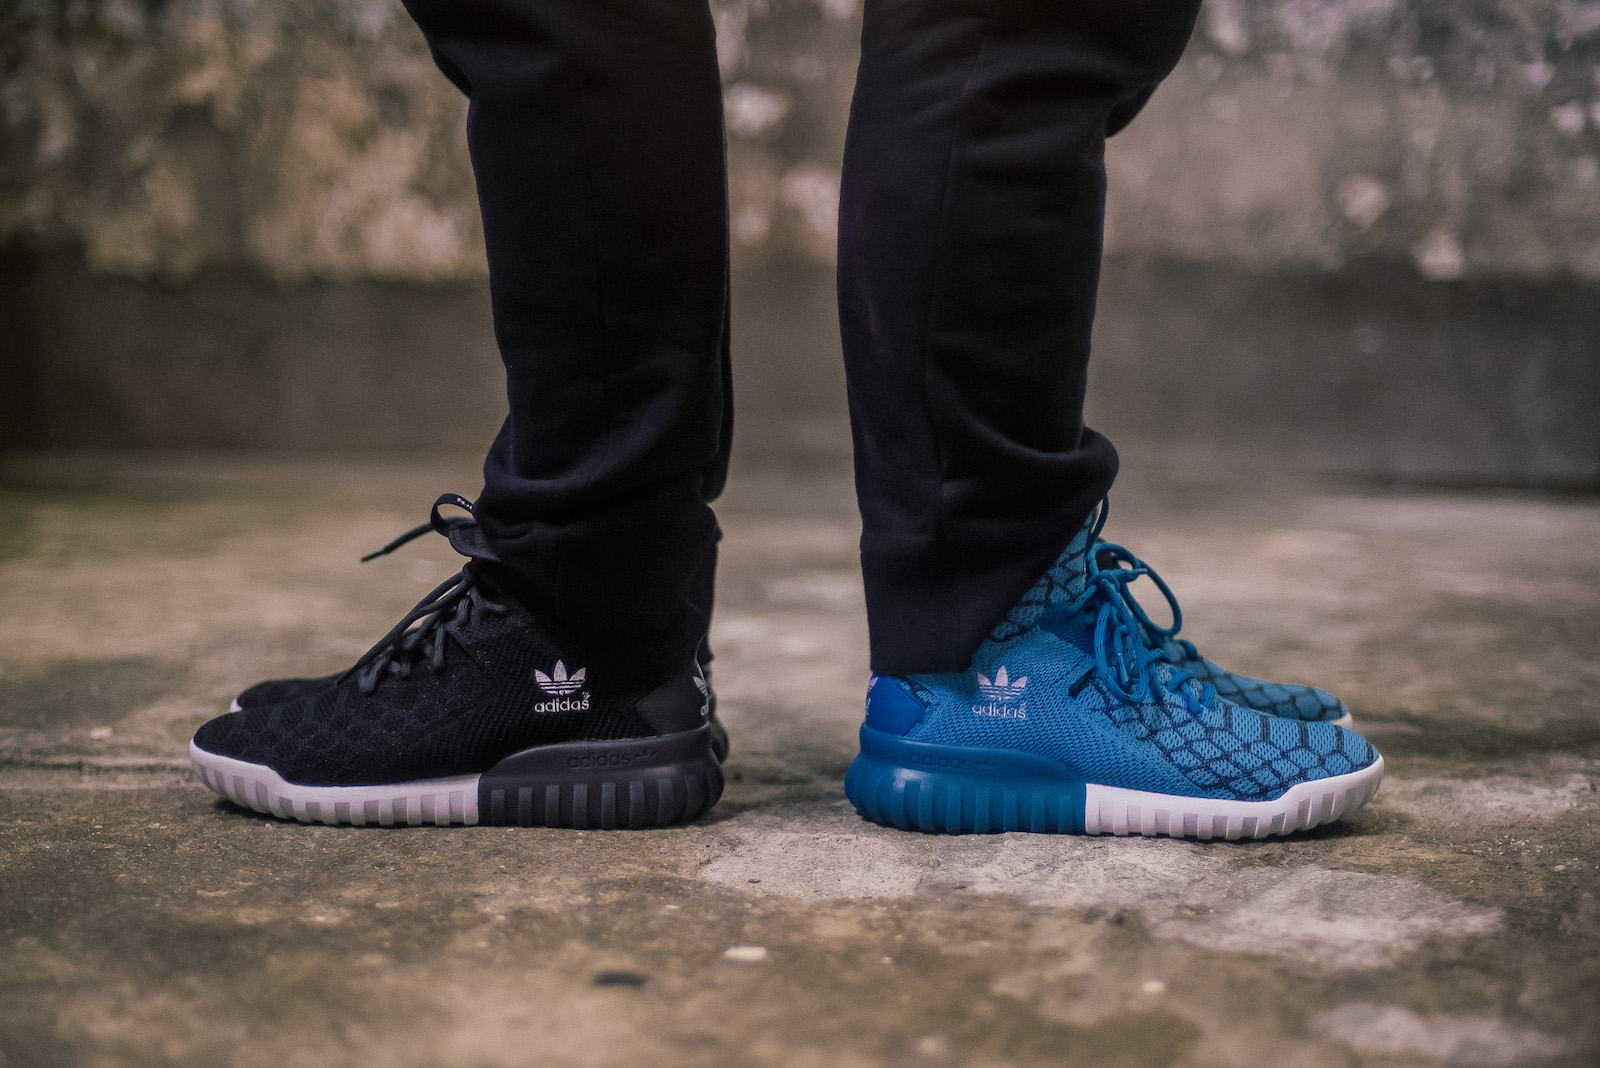 sbr-adidas-superstart-tubular-13